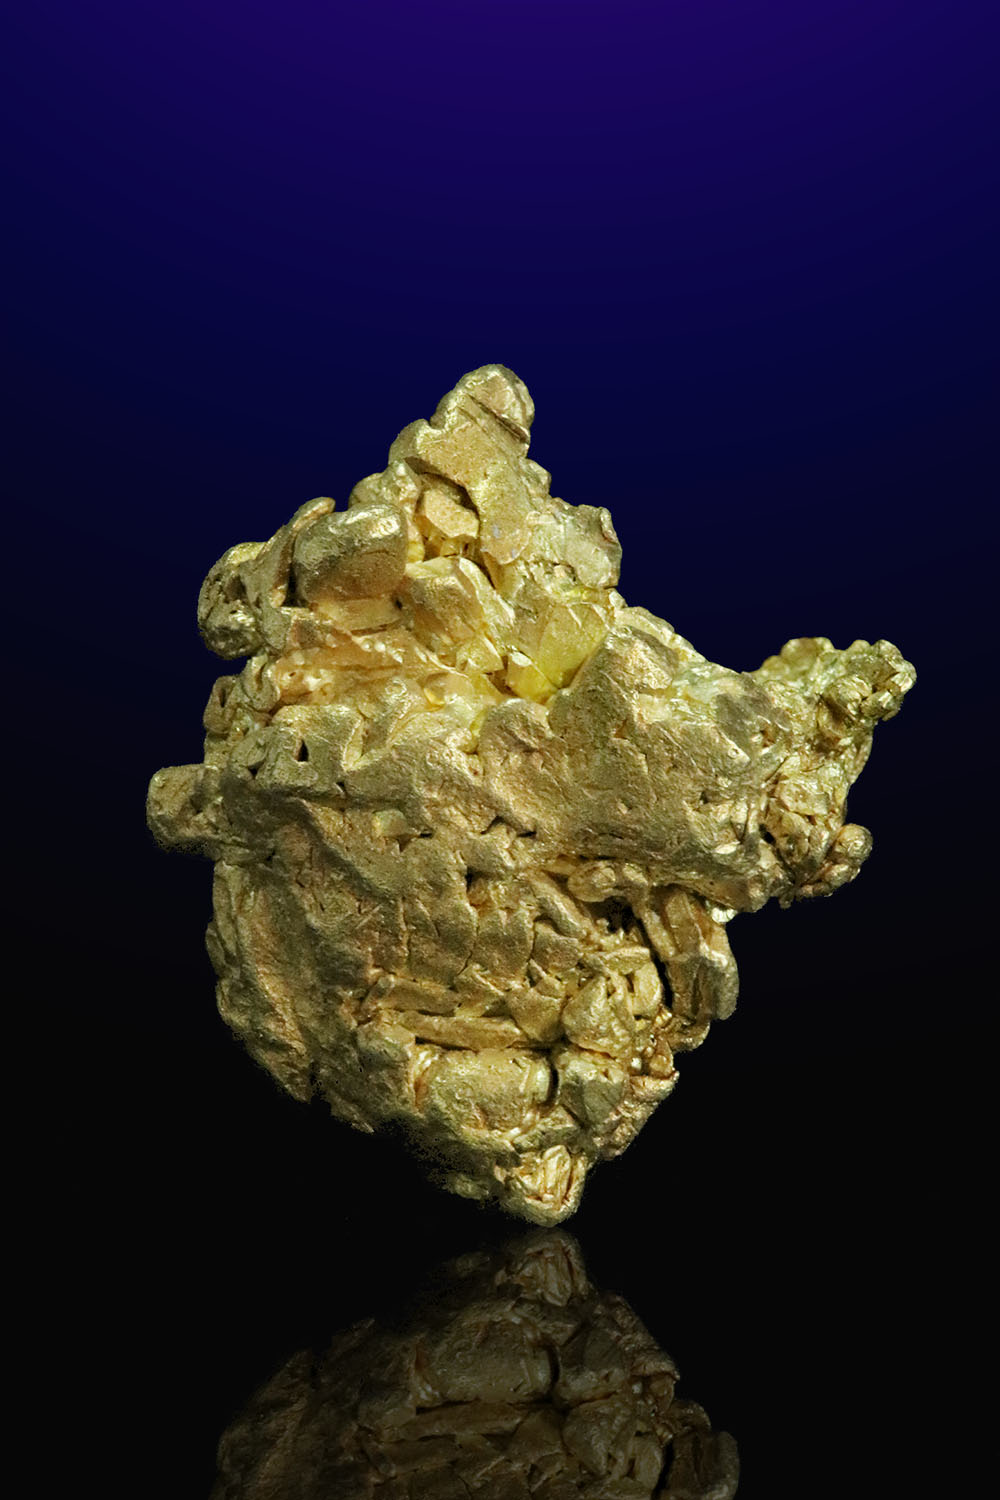 Hefty Gold Specimen from Mt. Kare, Papua New Guinea